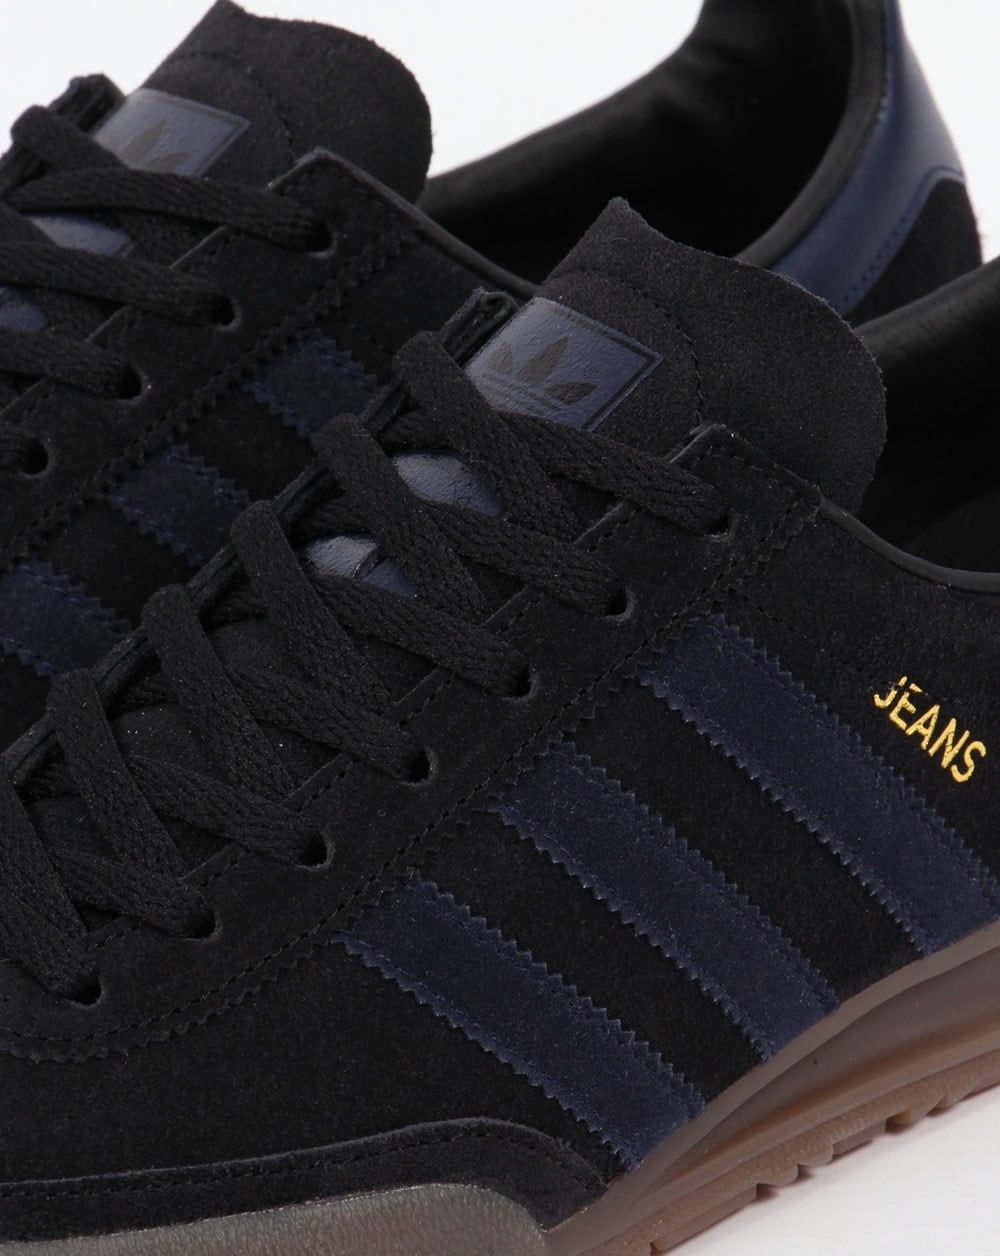 mens jeans adidas trainers navy shoes